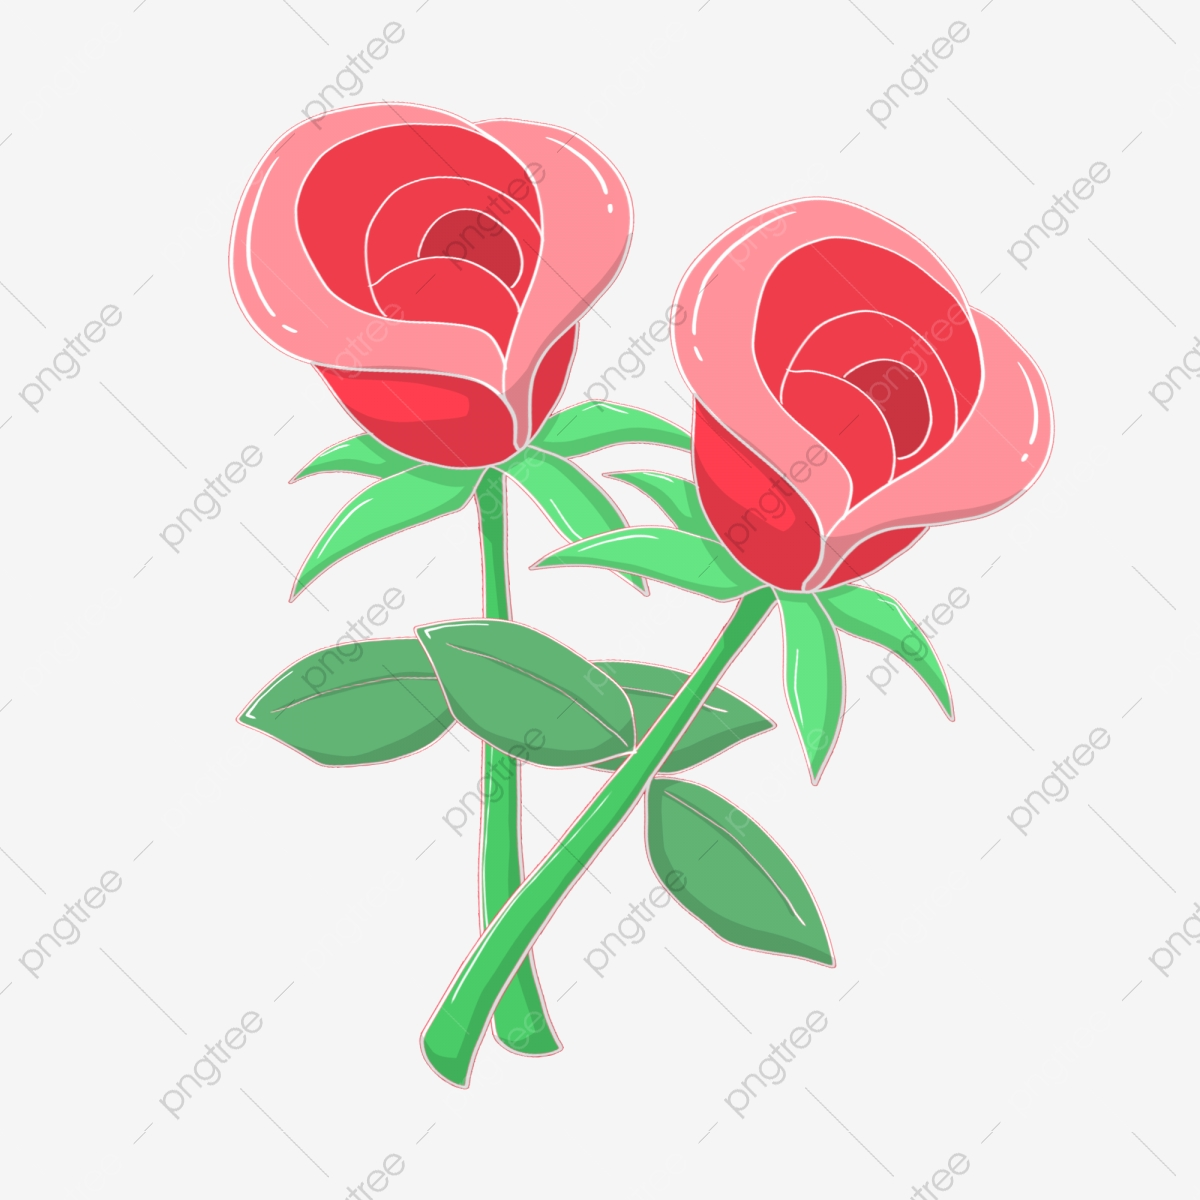 Red Rose Bushes, Rose Clipart, Roses, Green Grass PNG Transparent